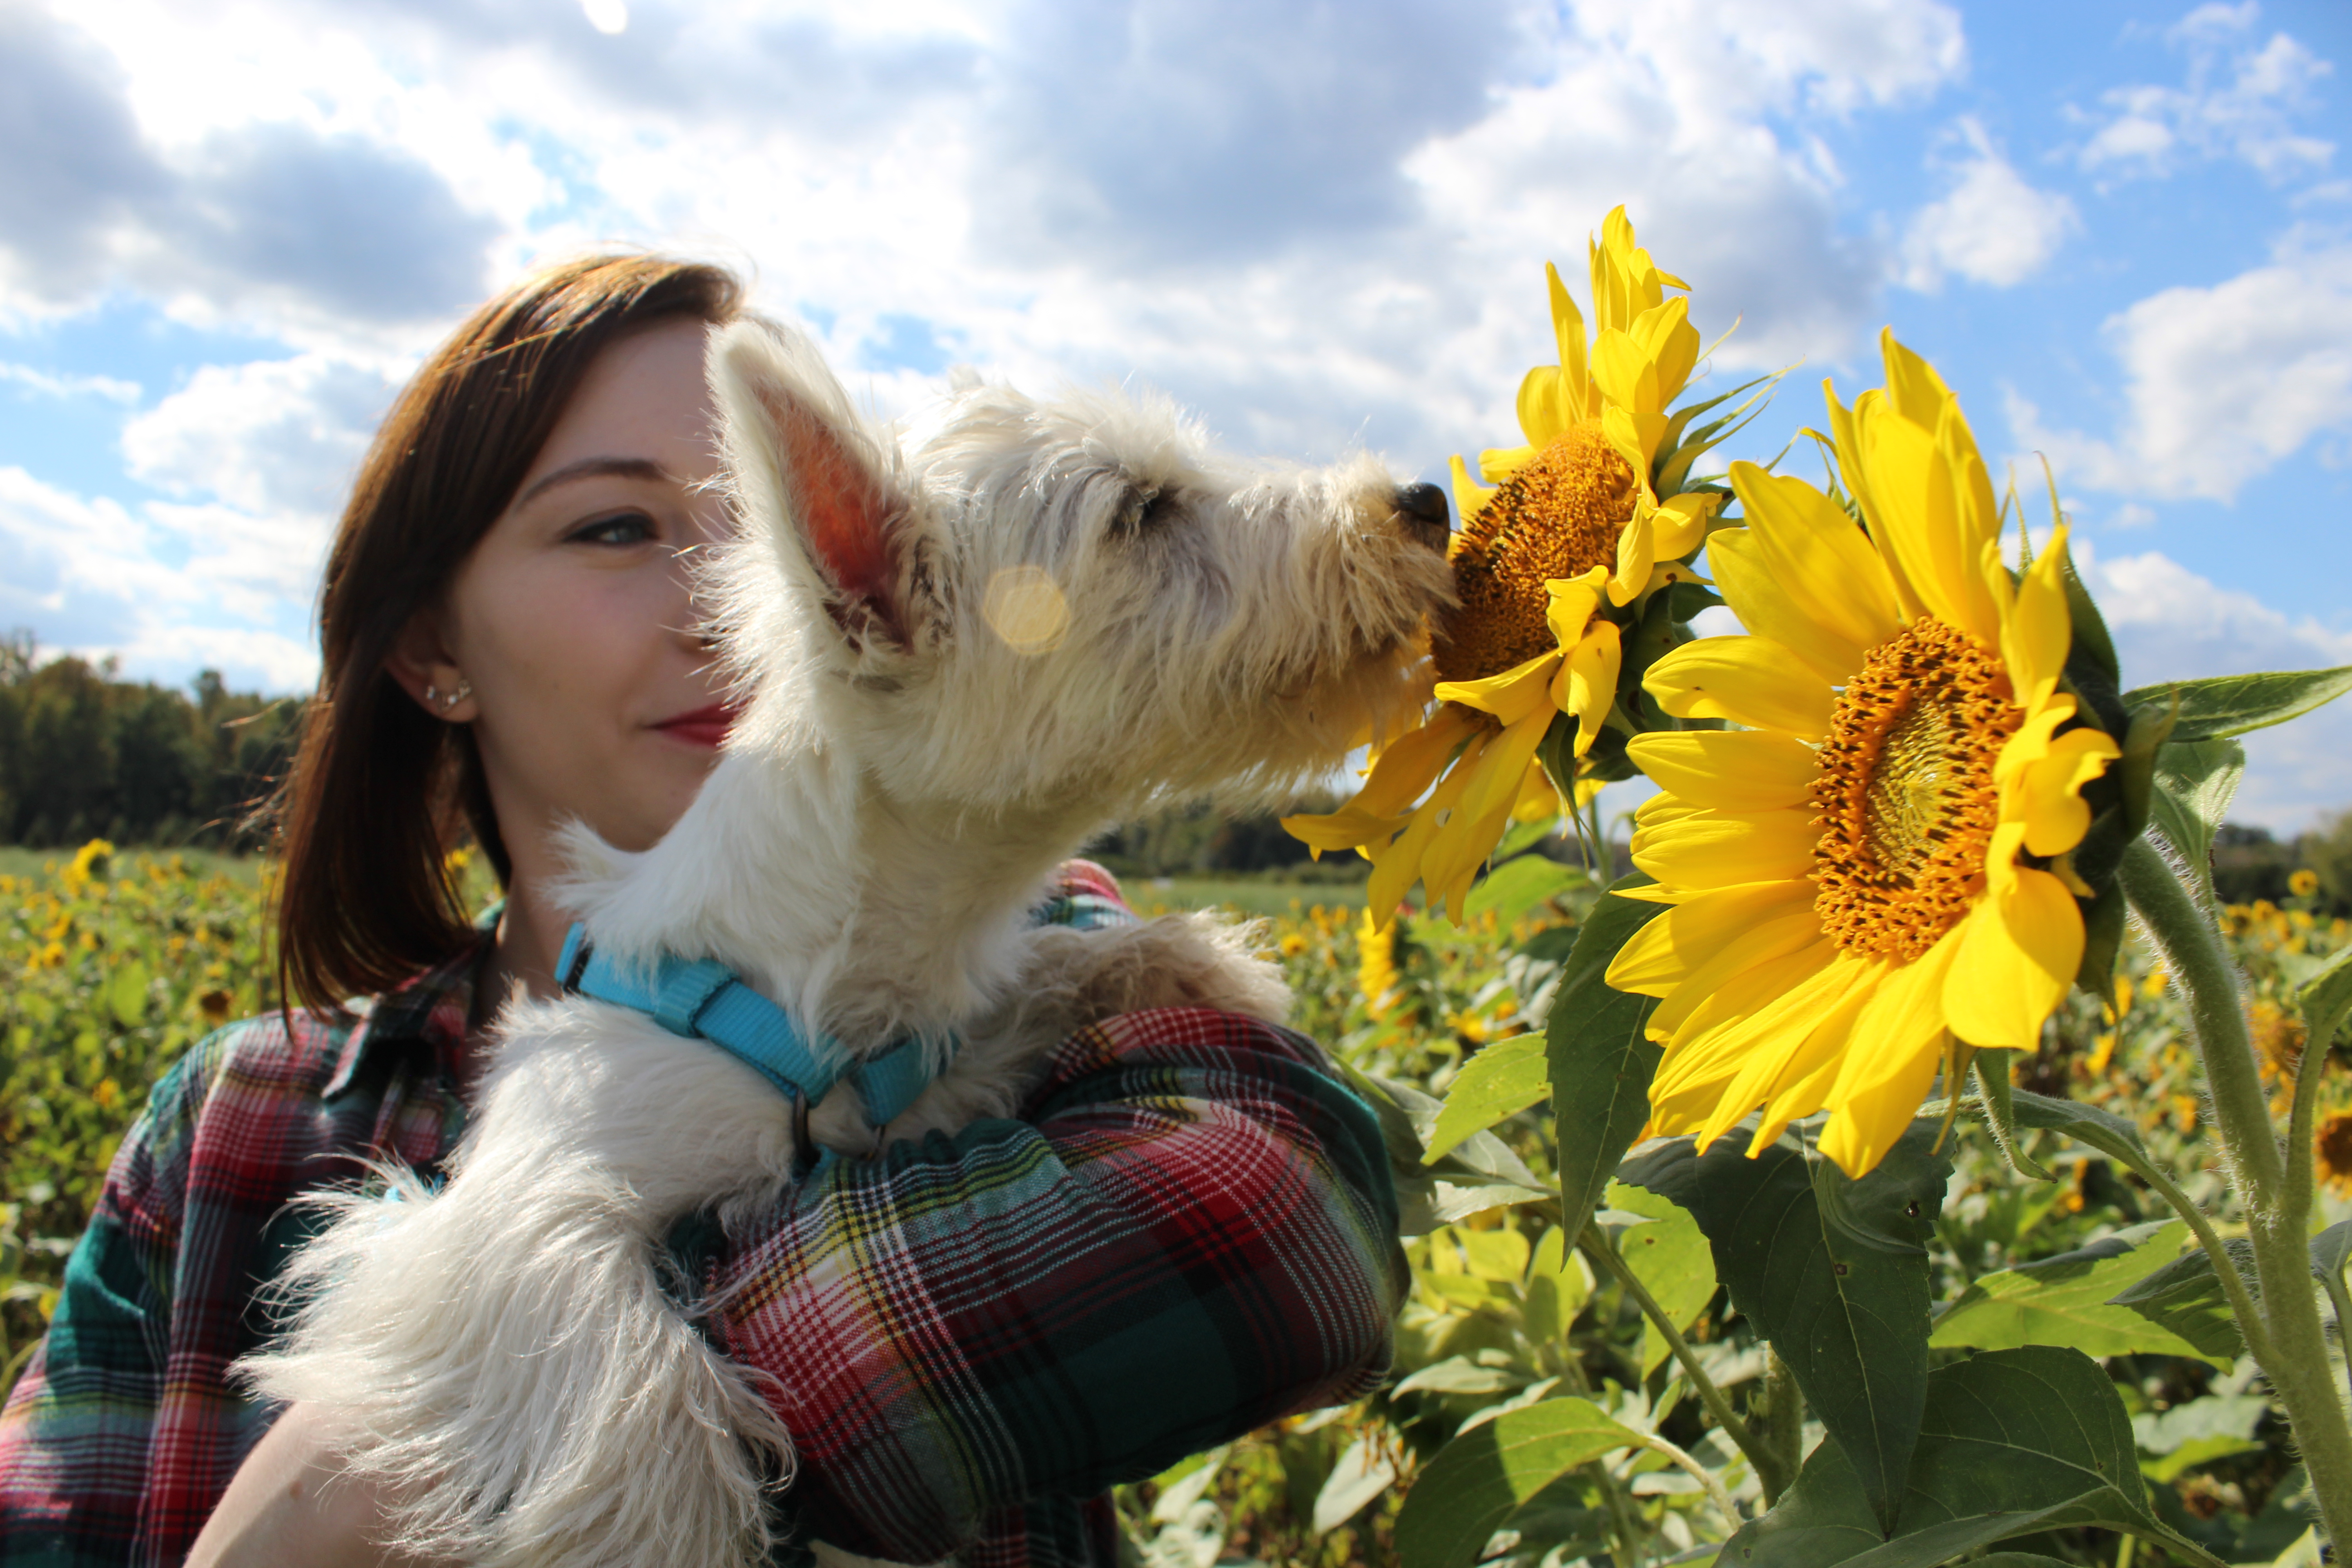 A picture of my dog Sophie as a puppy sniffing a sunflower as i hold her up next to it